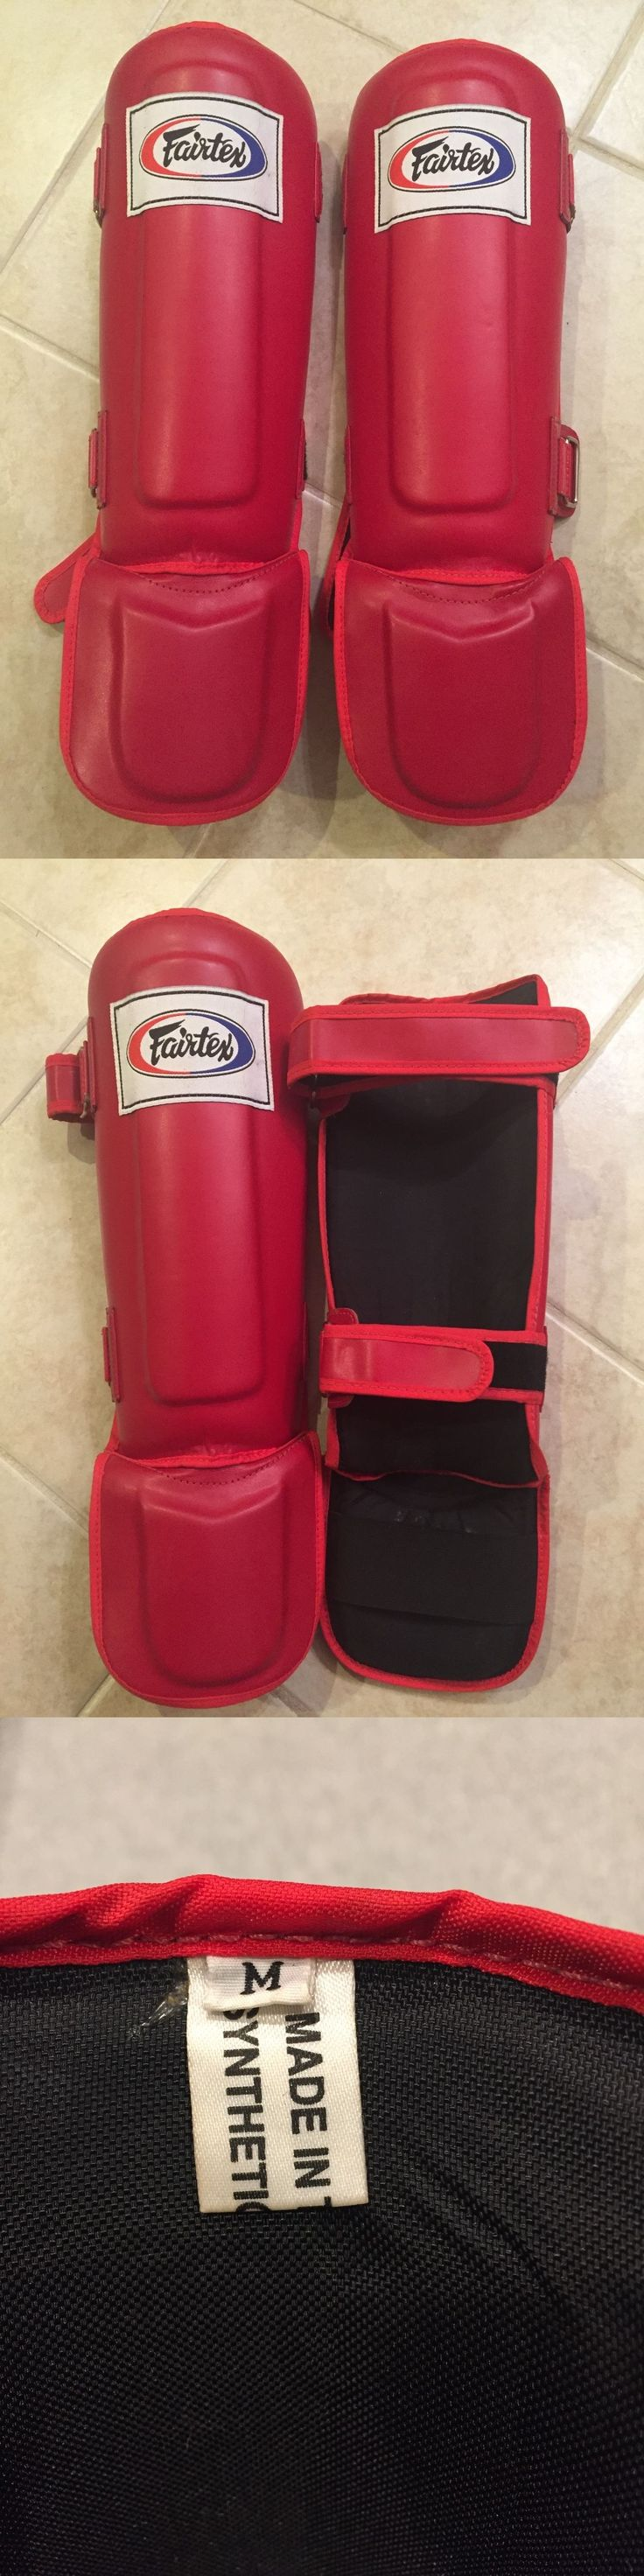 Shin Guards 179782: Barely Used Fairtex Shin Pads Muay Thai Boxing Red Shin Guards - Size Medium -> BUY IT NOW ONLY: $40 on eBay!